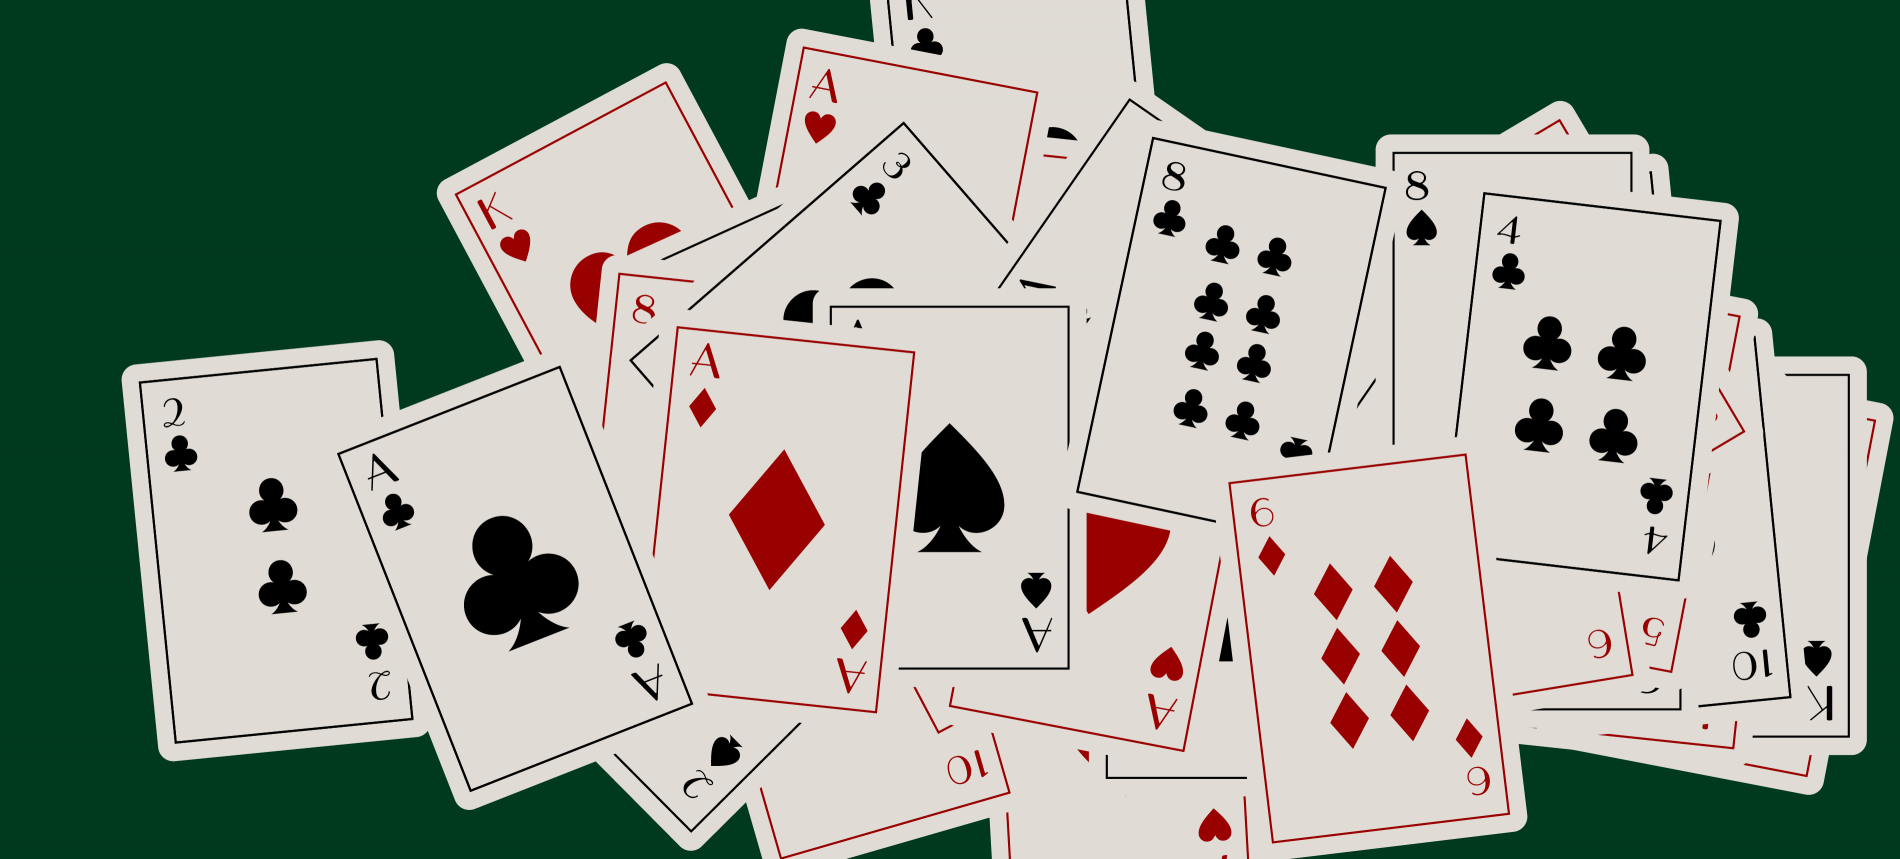 How much do professional craps players make